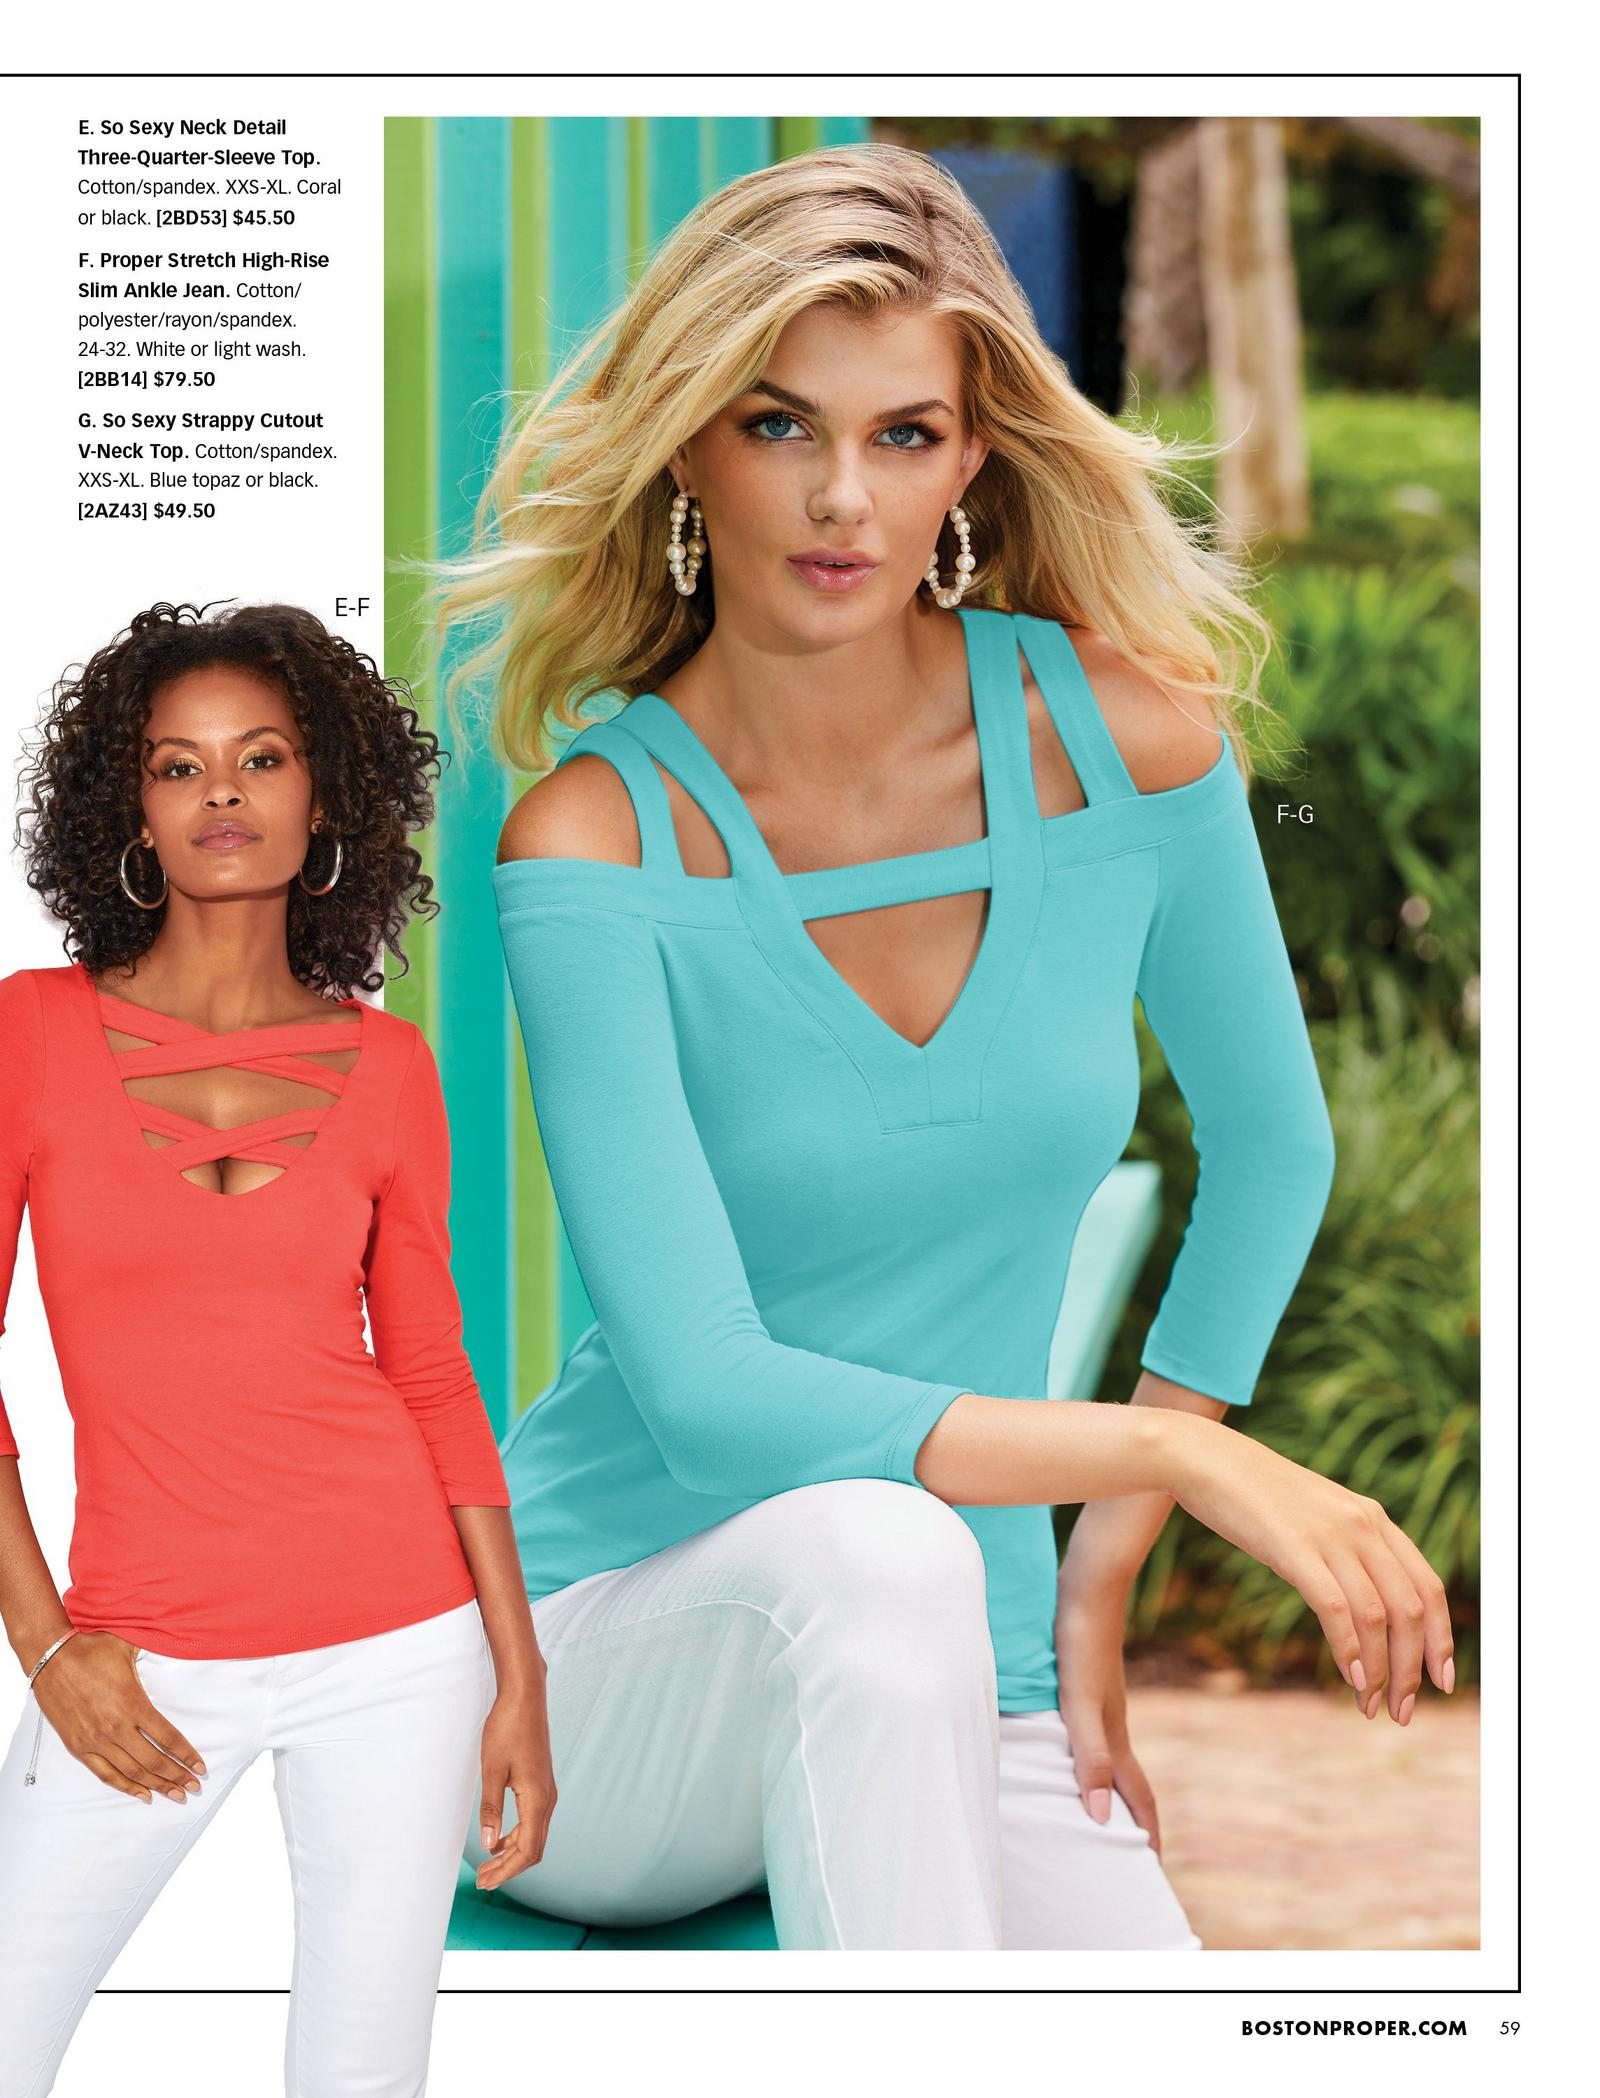 left model wearing an orange keyhole three-quarter sleeve top and white jeans. right model wearing a keyhole cold-shoulder light blue three-quarter sleeve top and white jeans.